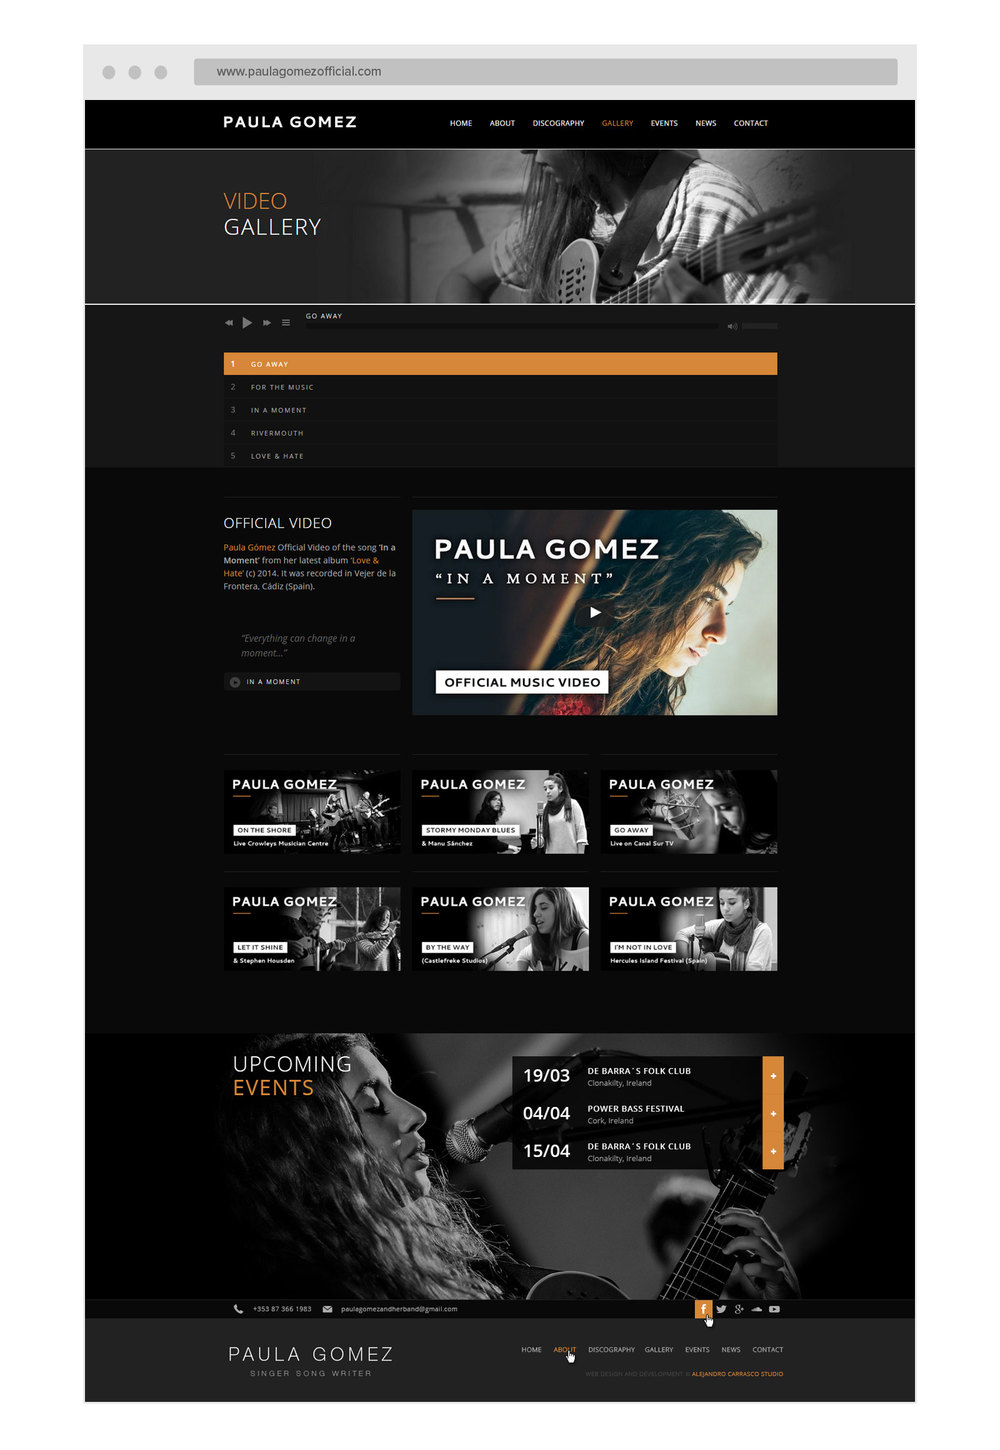 paula-gomez-website-04.jpg